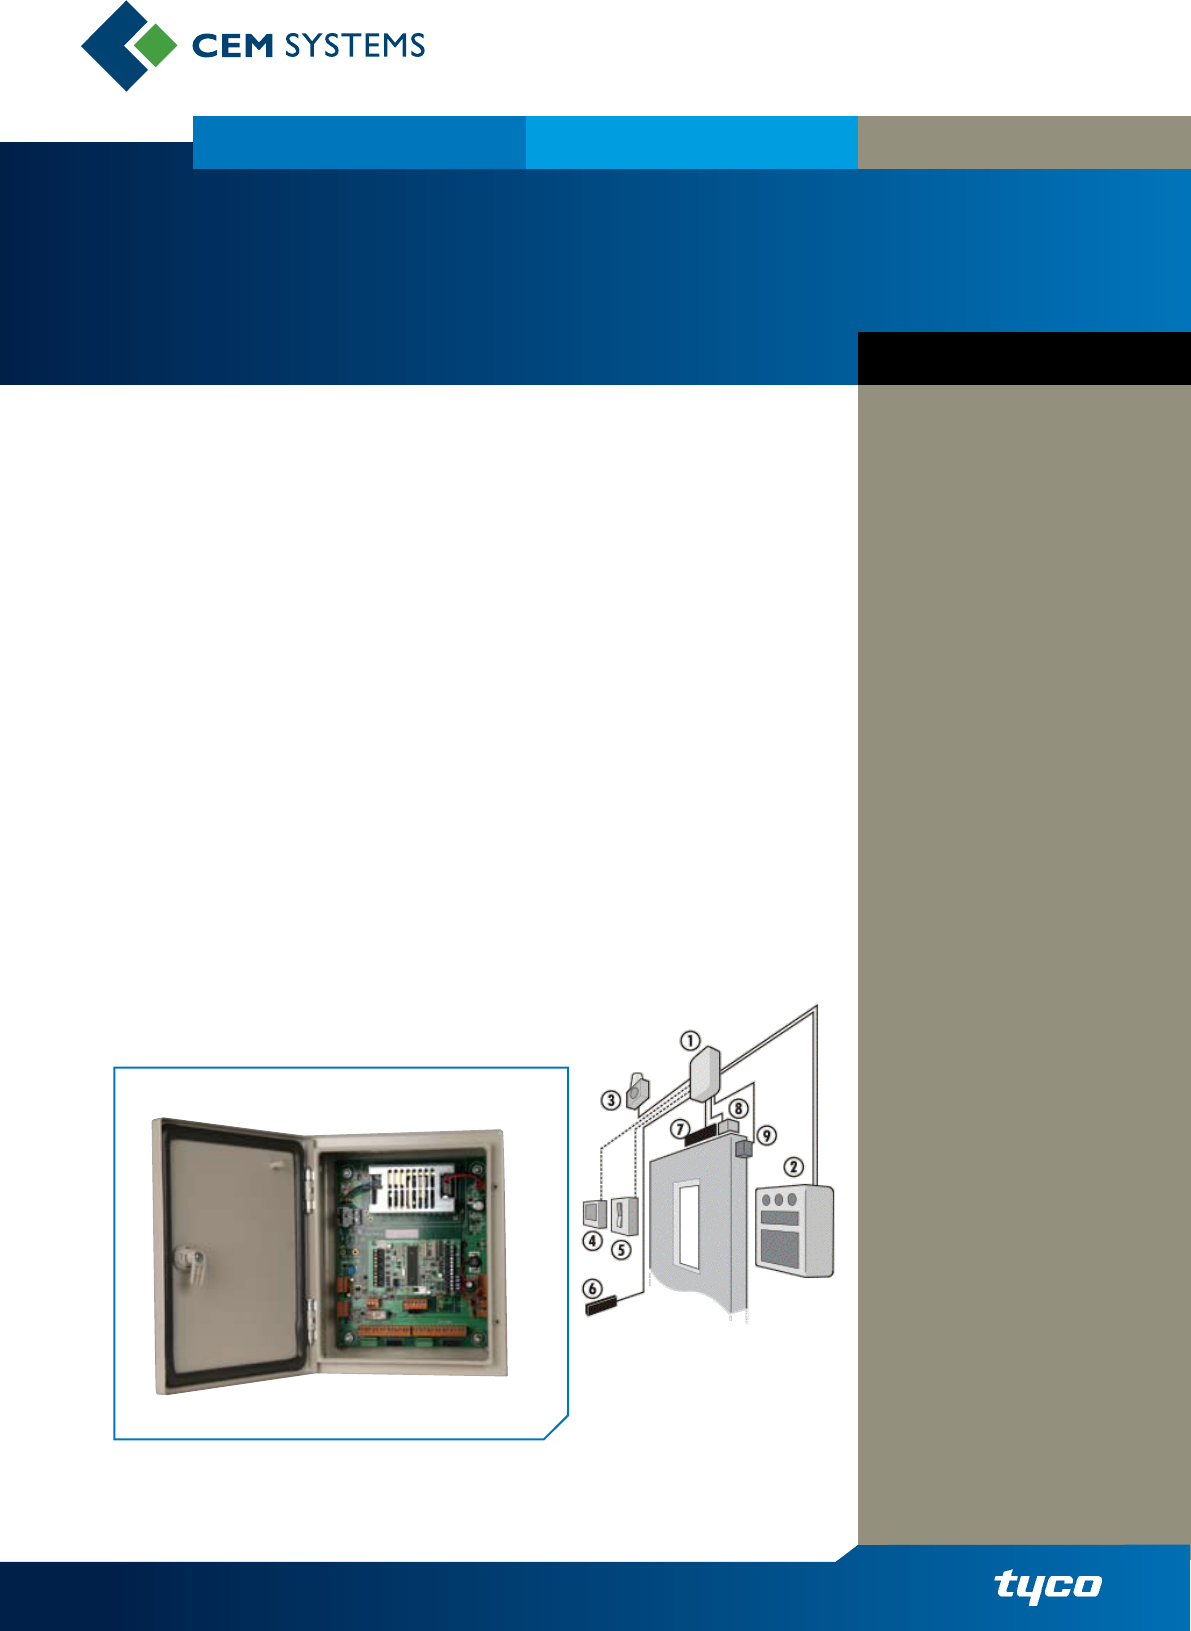 Tyco Door Interface Unit Diu 210 Users Manual Tyco Door Access Control Wiring Diagram on access control door opener diagram, door frame diagram, door schematic, access control system diagram, door hinge diagram, door access controller, access control schematic diagram, door control system block diagram, door access readers, door strike intercom access control diagram, double door access control diagram, magnetic card reader diagram, entry control point diagram, door installation diagram, door access systems, door access control tools, single door access control diagram, door access control riser diagram, door access control cable, ring network topology diagram,